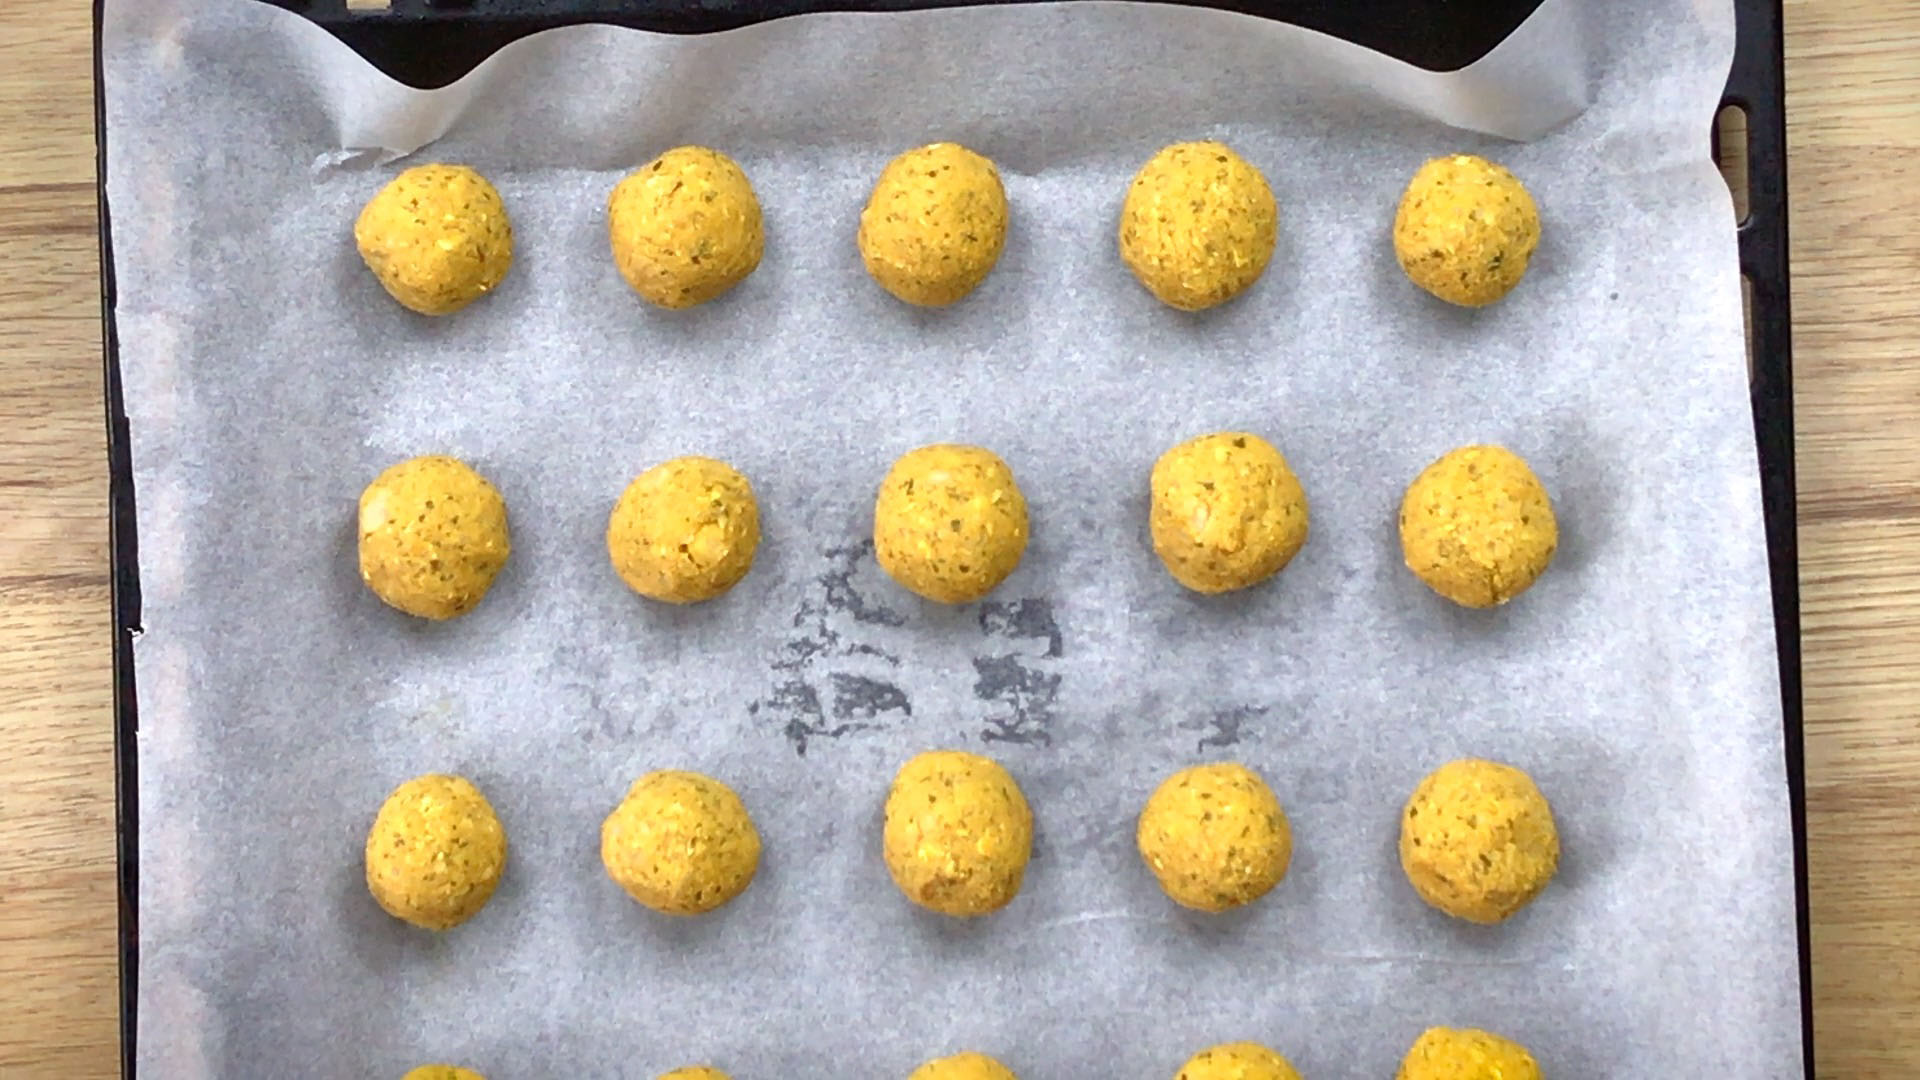 Yellow balls lined on a parchment paper in a sheet pan.